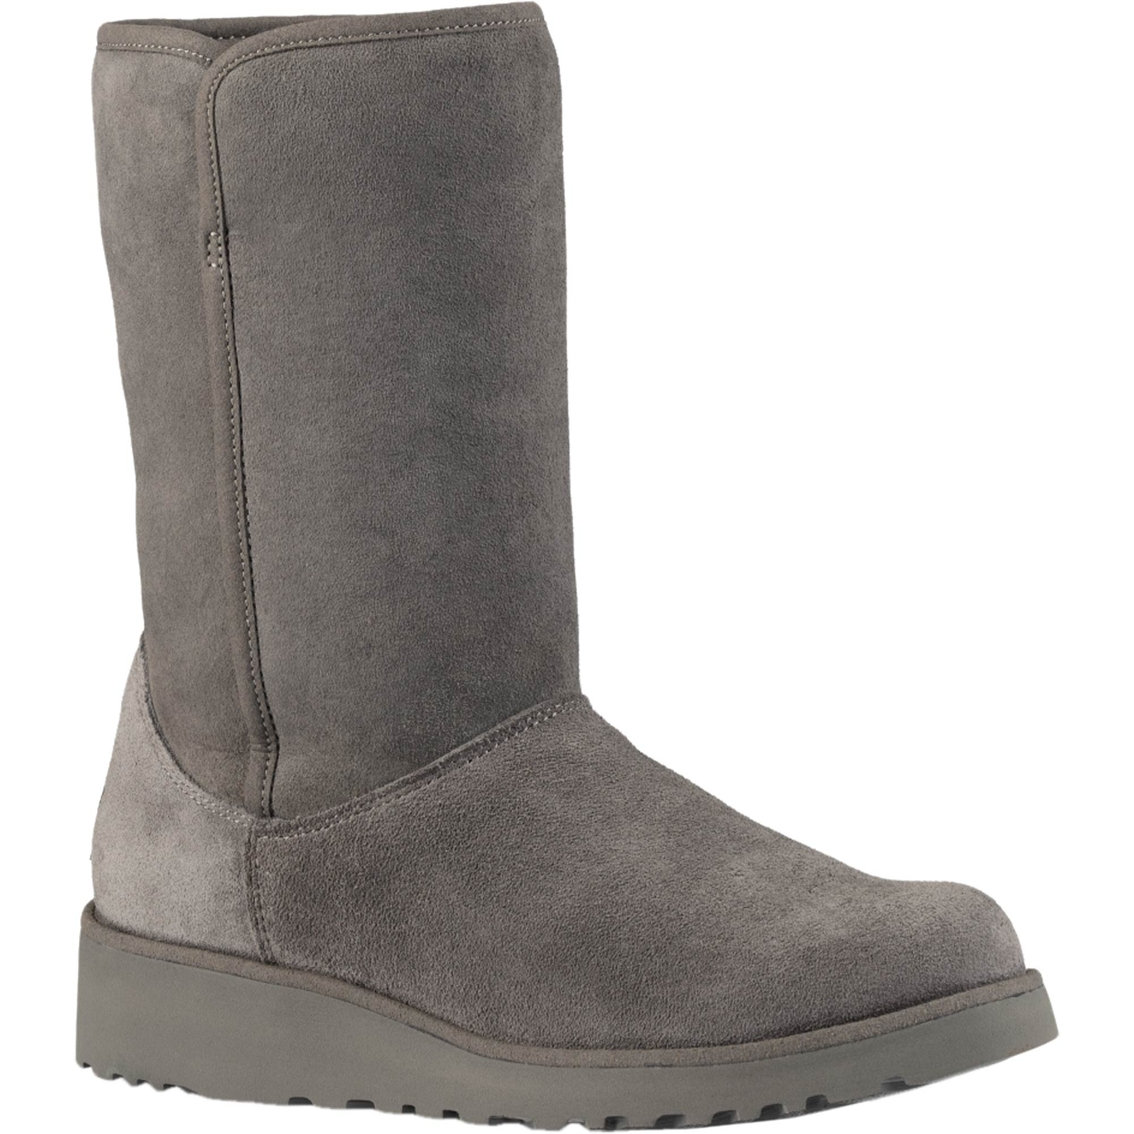 Ugg Amie Slim Wedge Boots Tall Boots Shoes Shop The